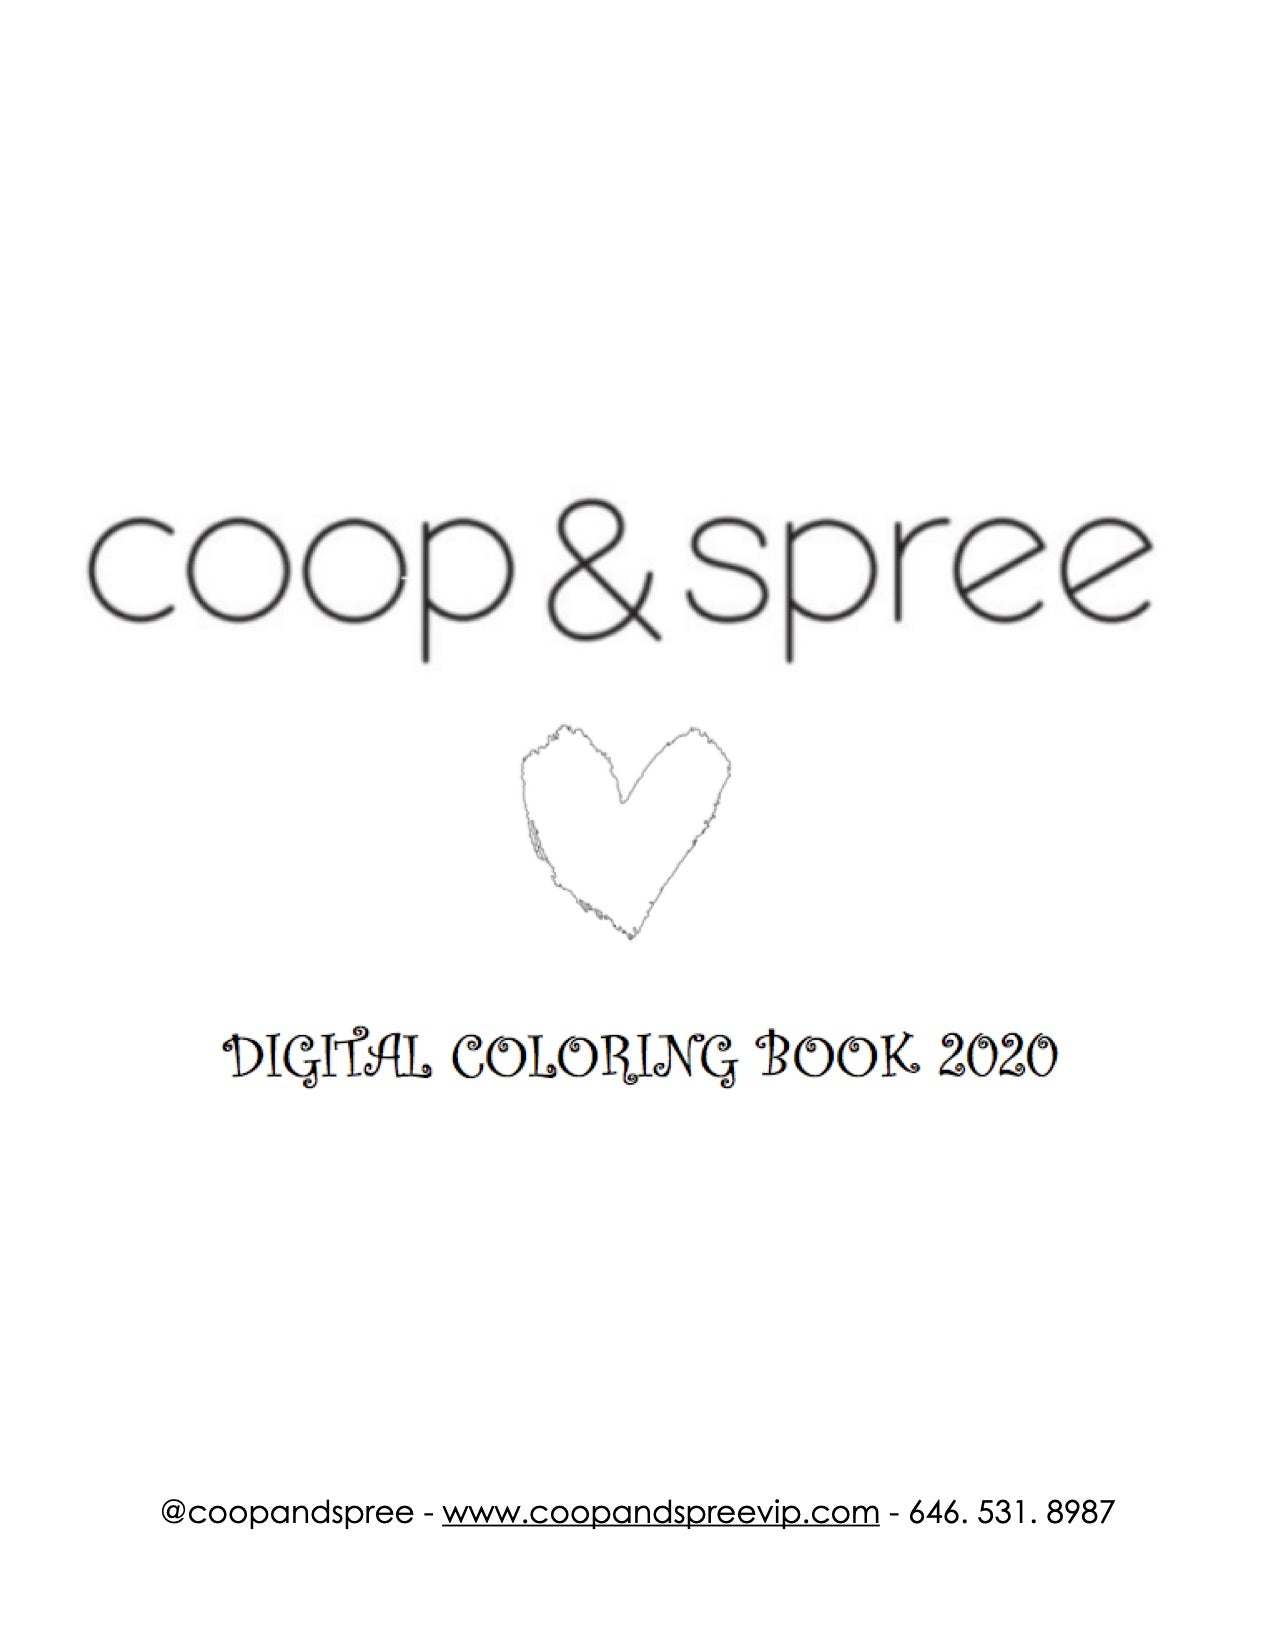 coop & spree Free Digital Coloring Book